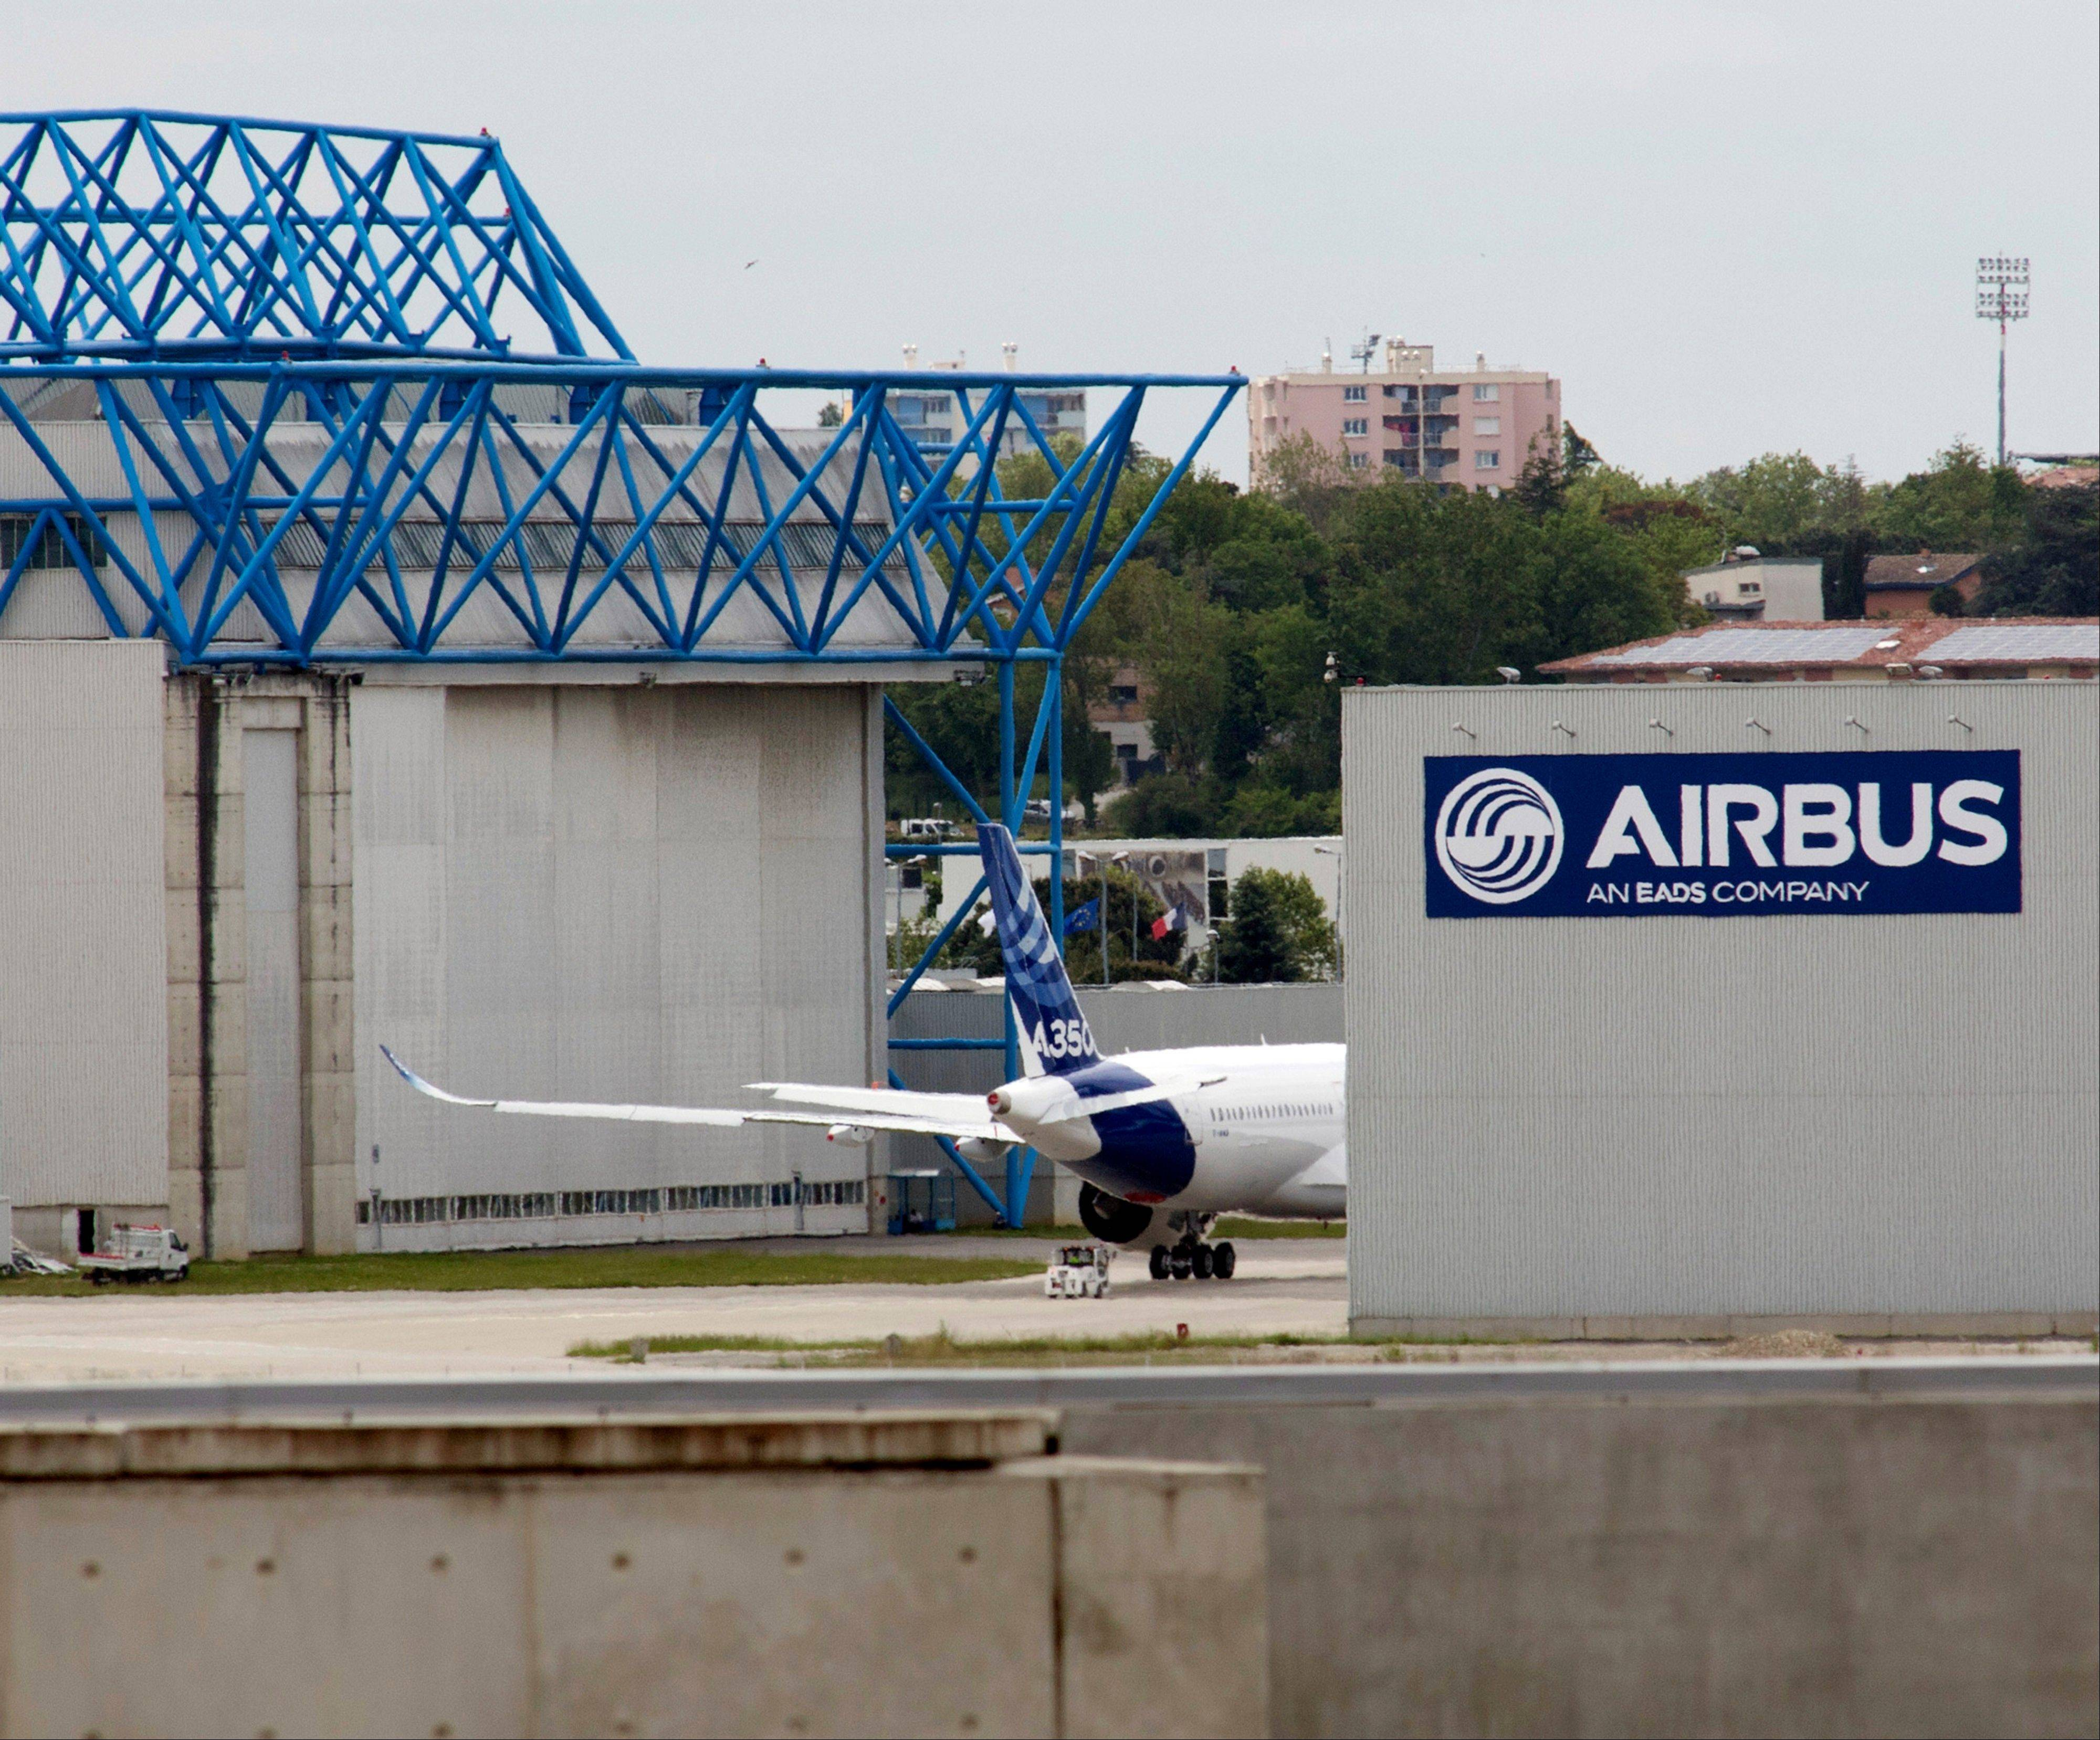 European aerospace company EADS said strong deliveries by airplane maker Airbus helped drive higher earnings i